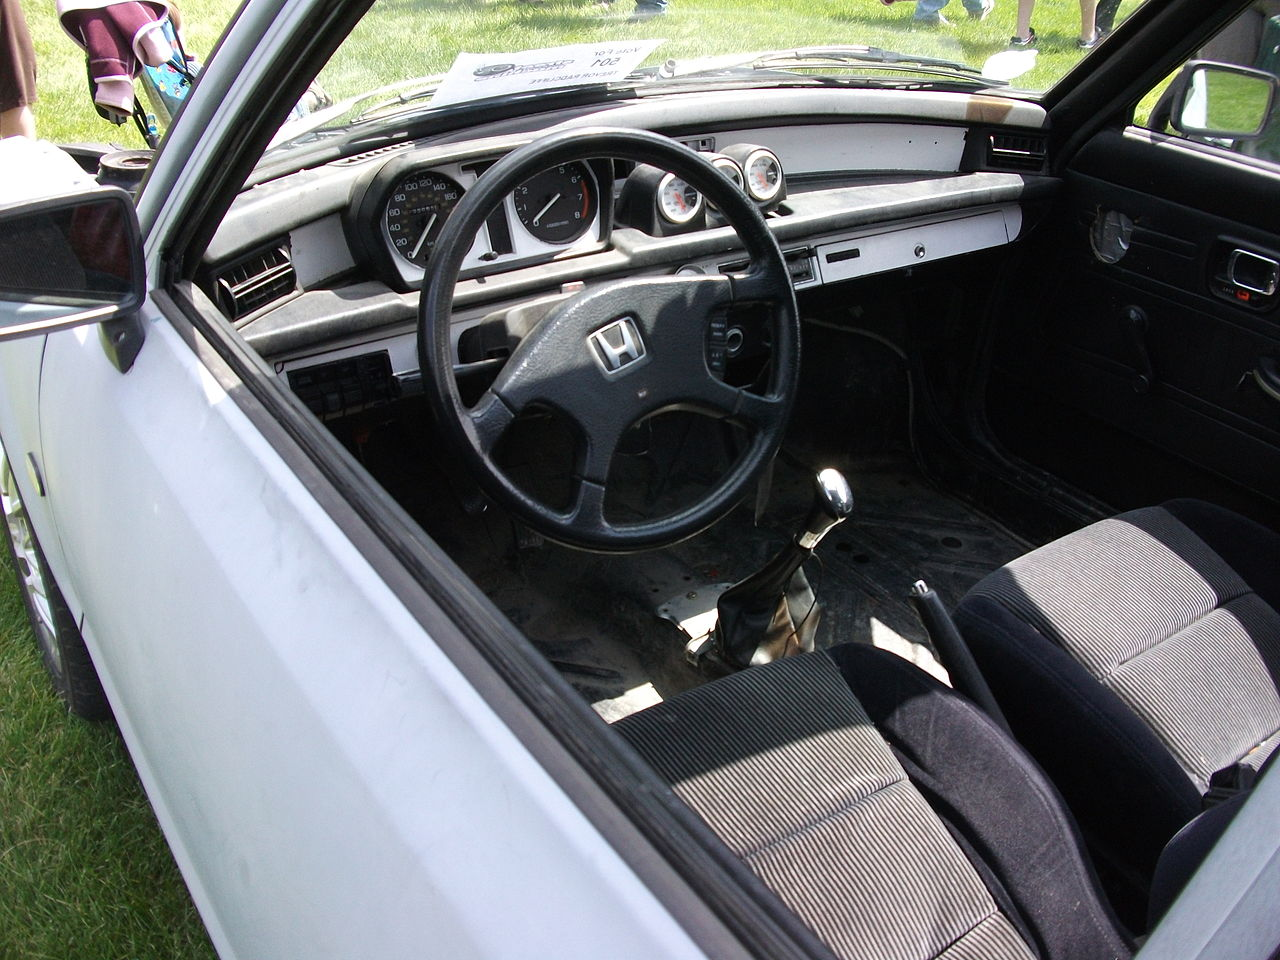 File:1978 Honda Civic interior (4794336191).jpg - Wikimedia Commons